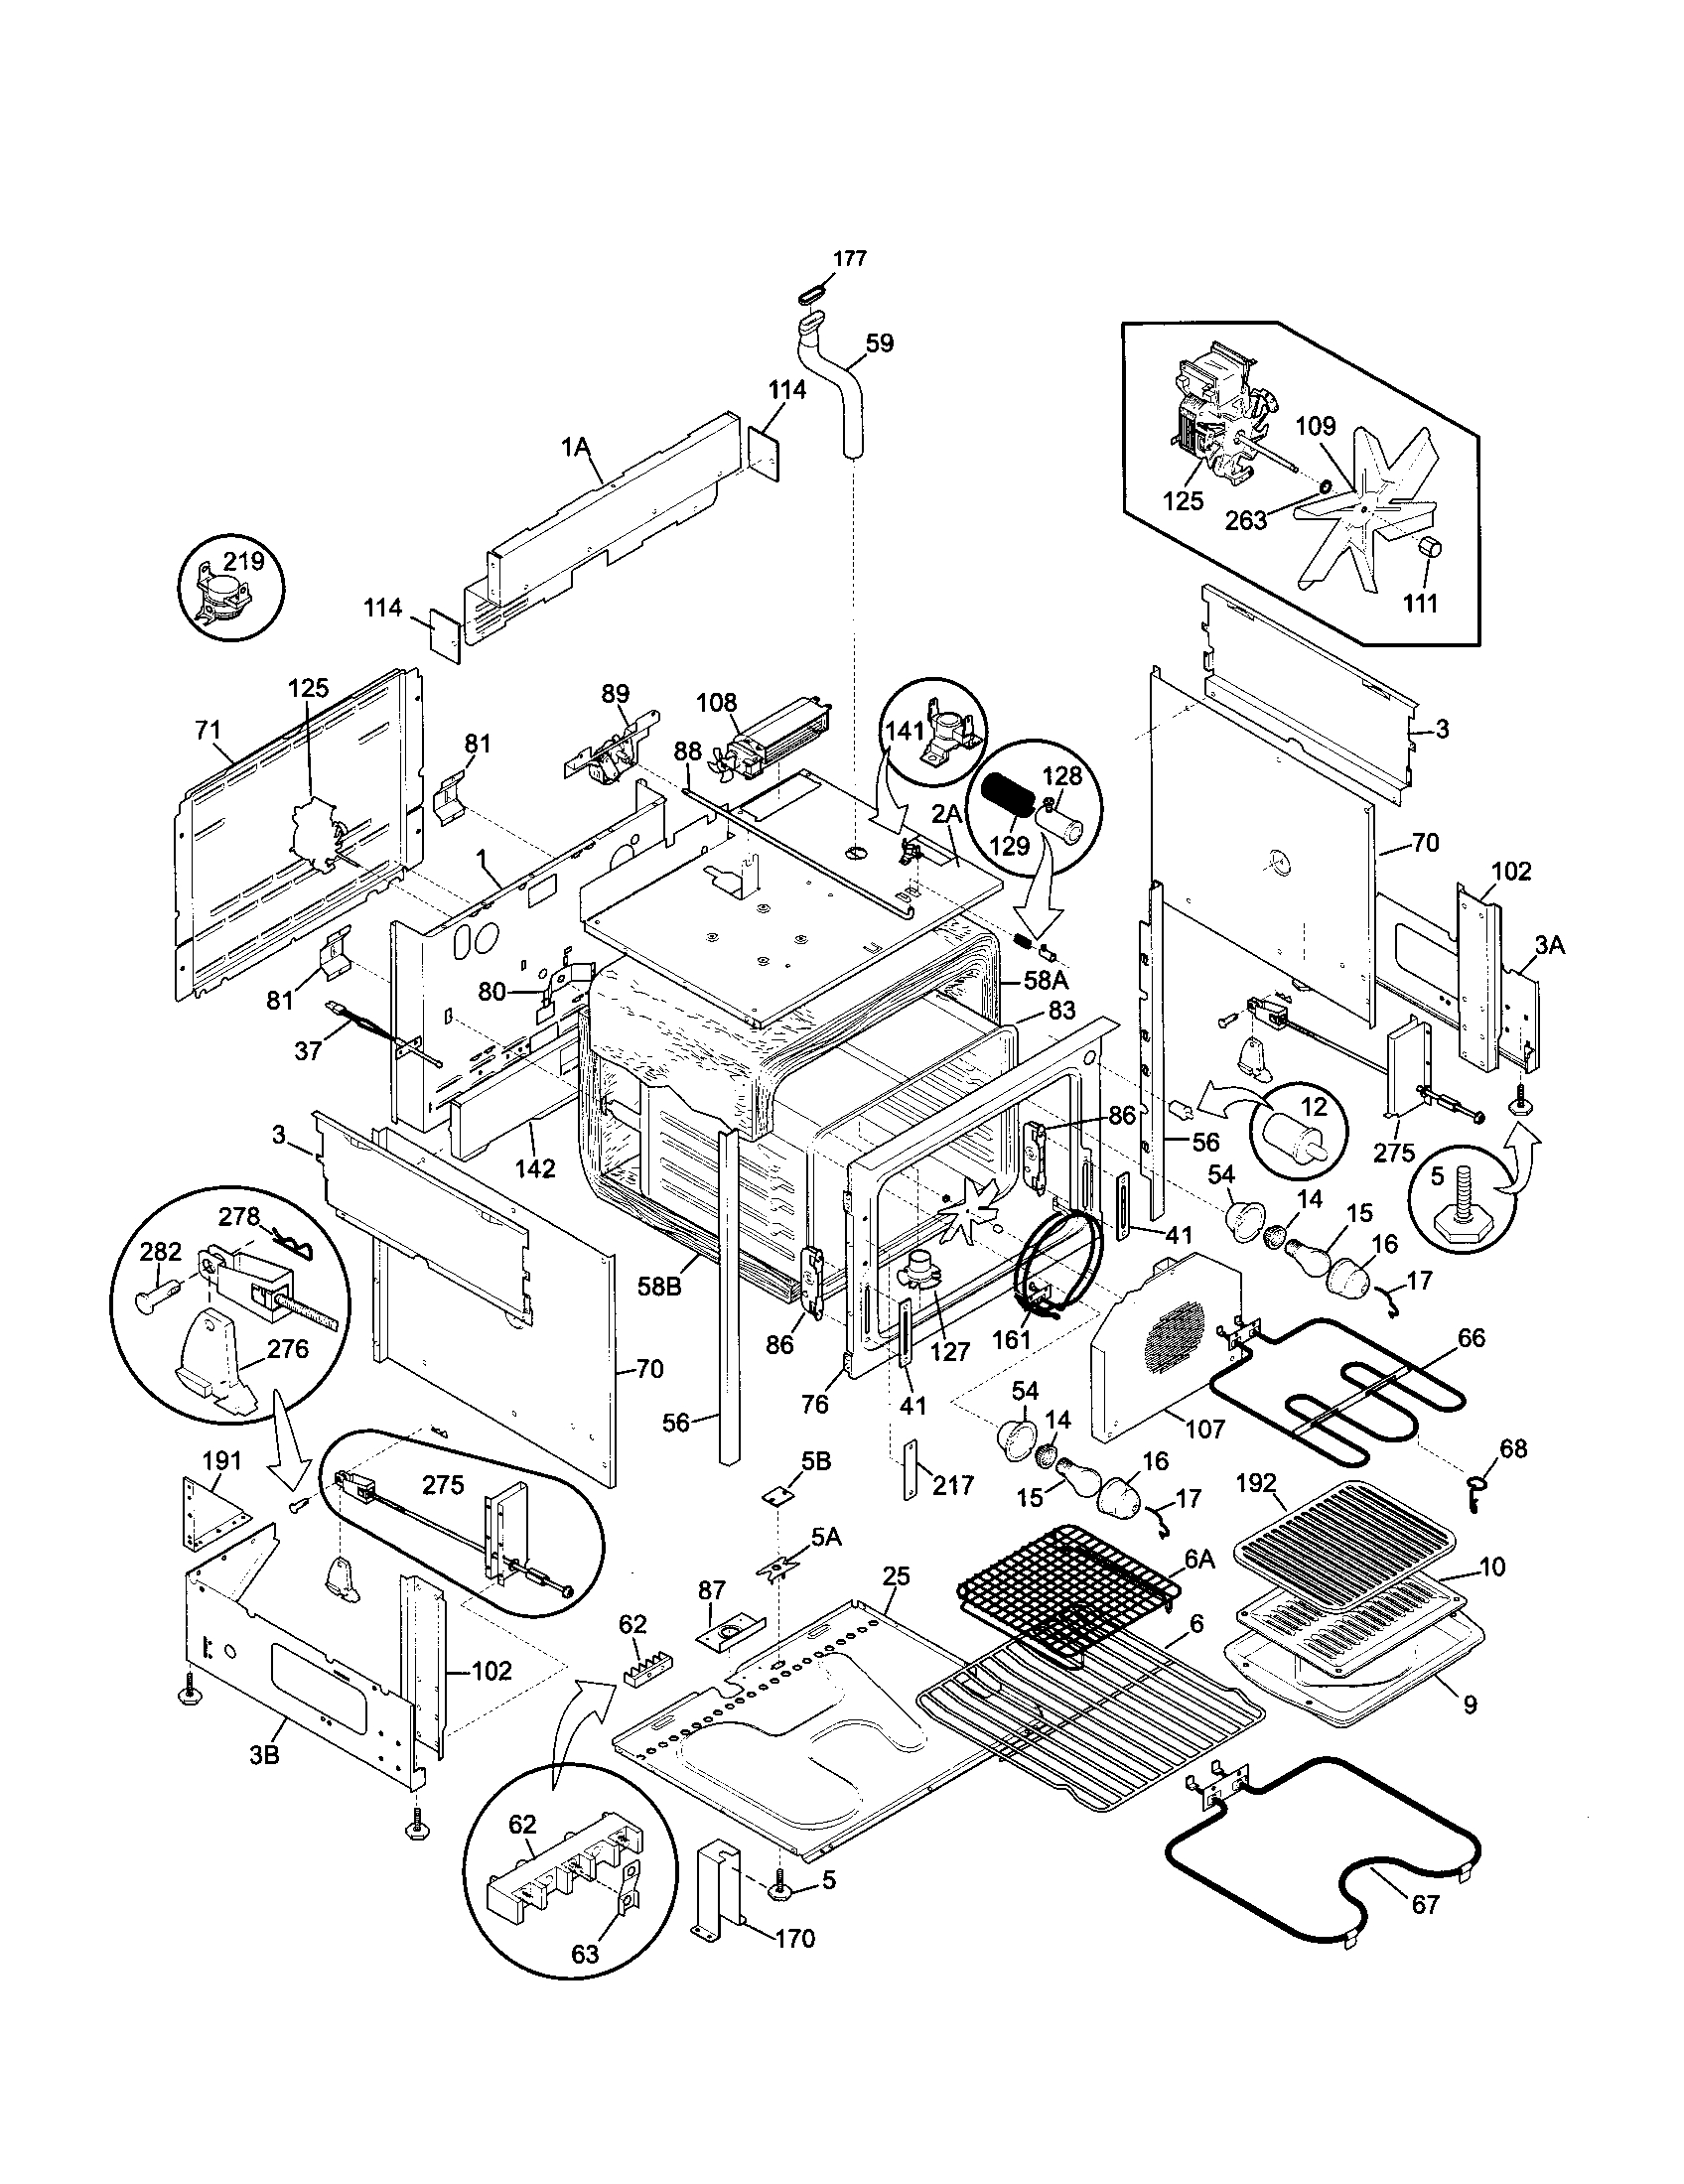 Kenmore Series 80 Dryer Wiring Diagram : 38 Wiring Diagram